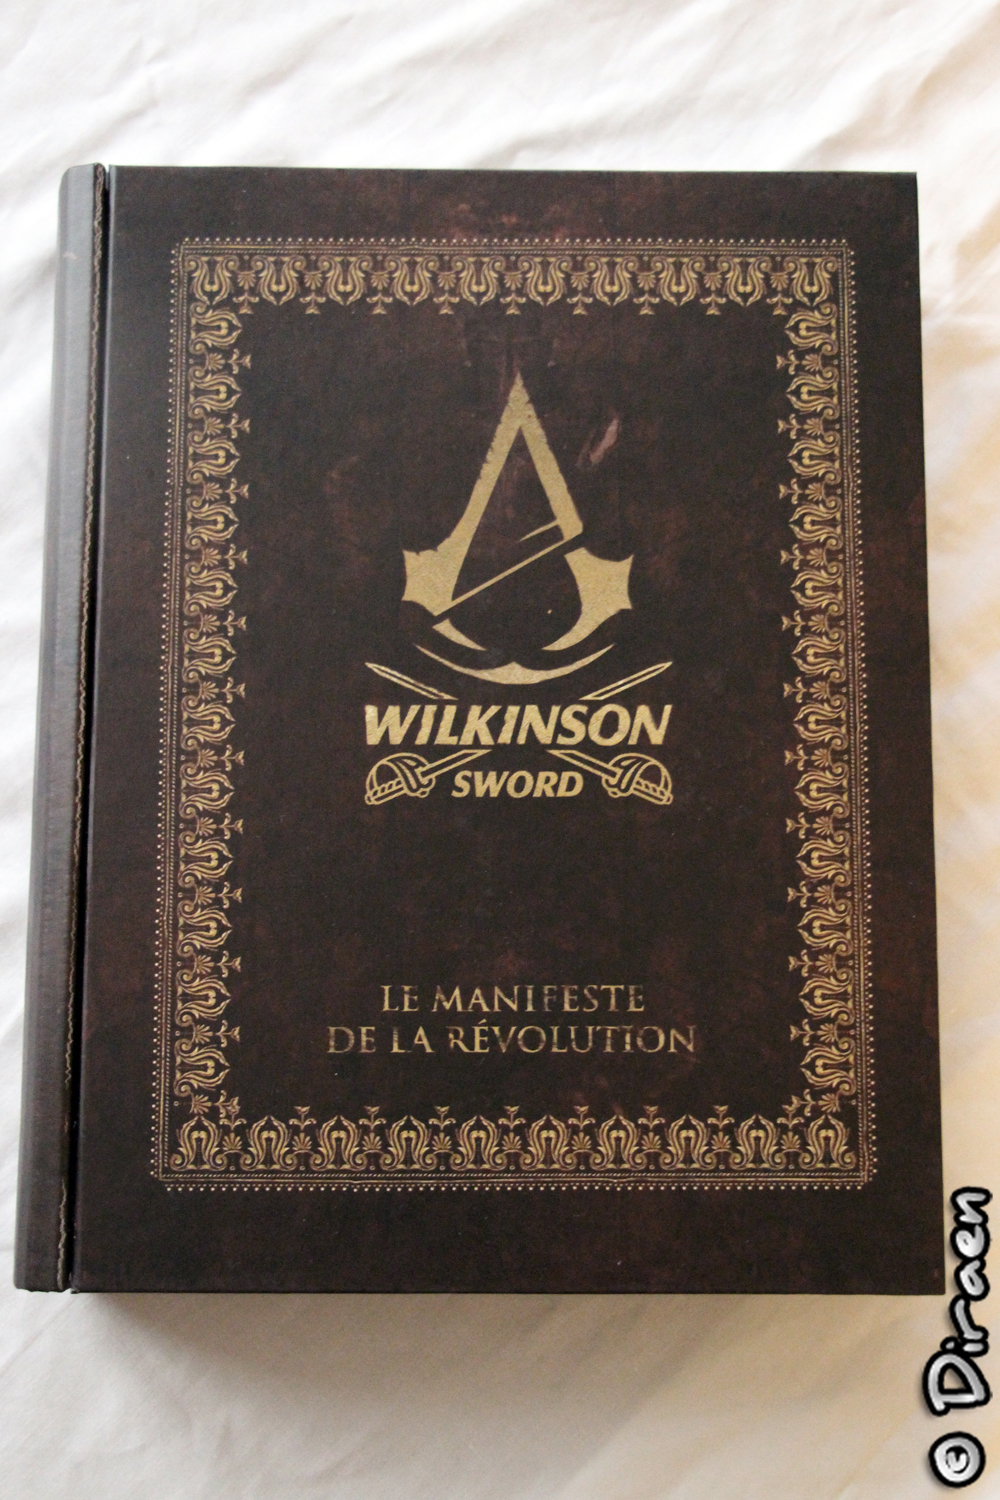 [Déballage] Buzz Kit Wilkinson Sword x Assassin's Creed Unity